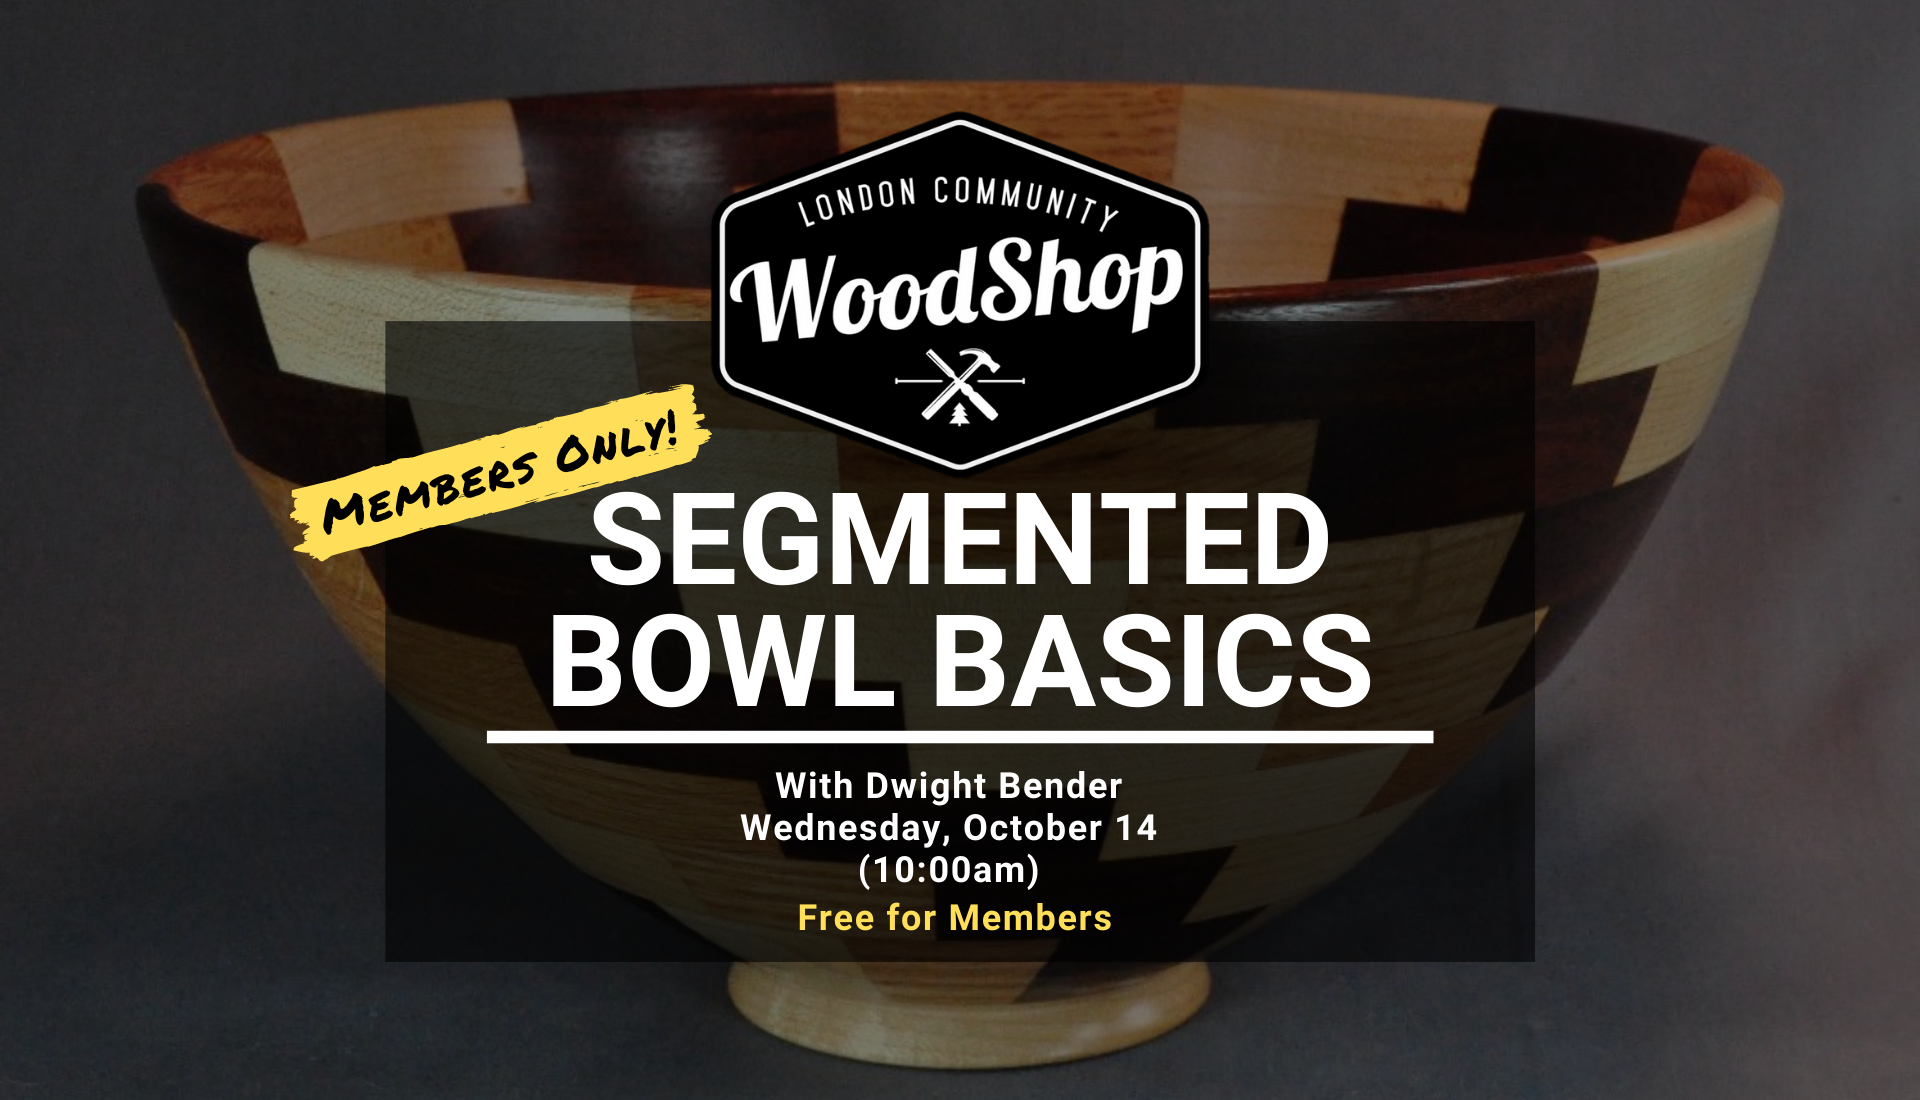 Segmented Bowl Basics - Wednesday, October 14